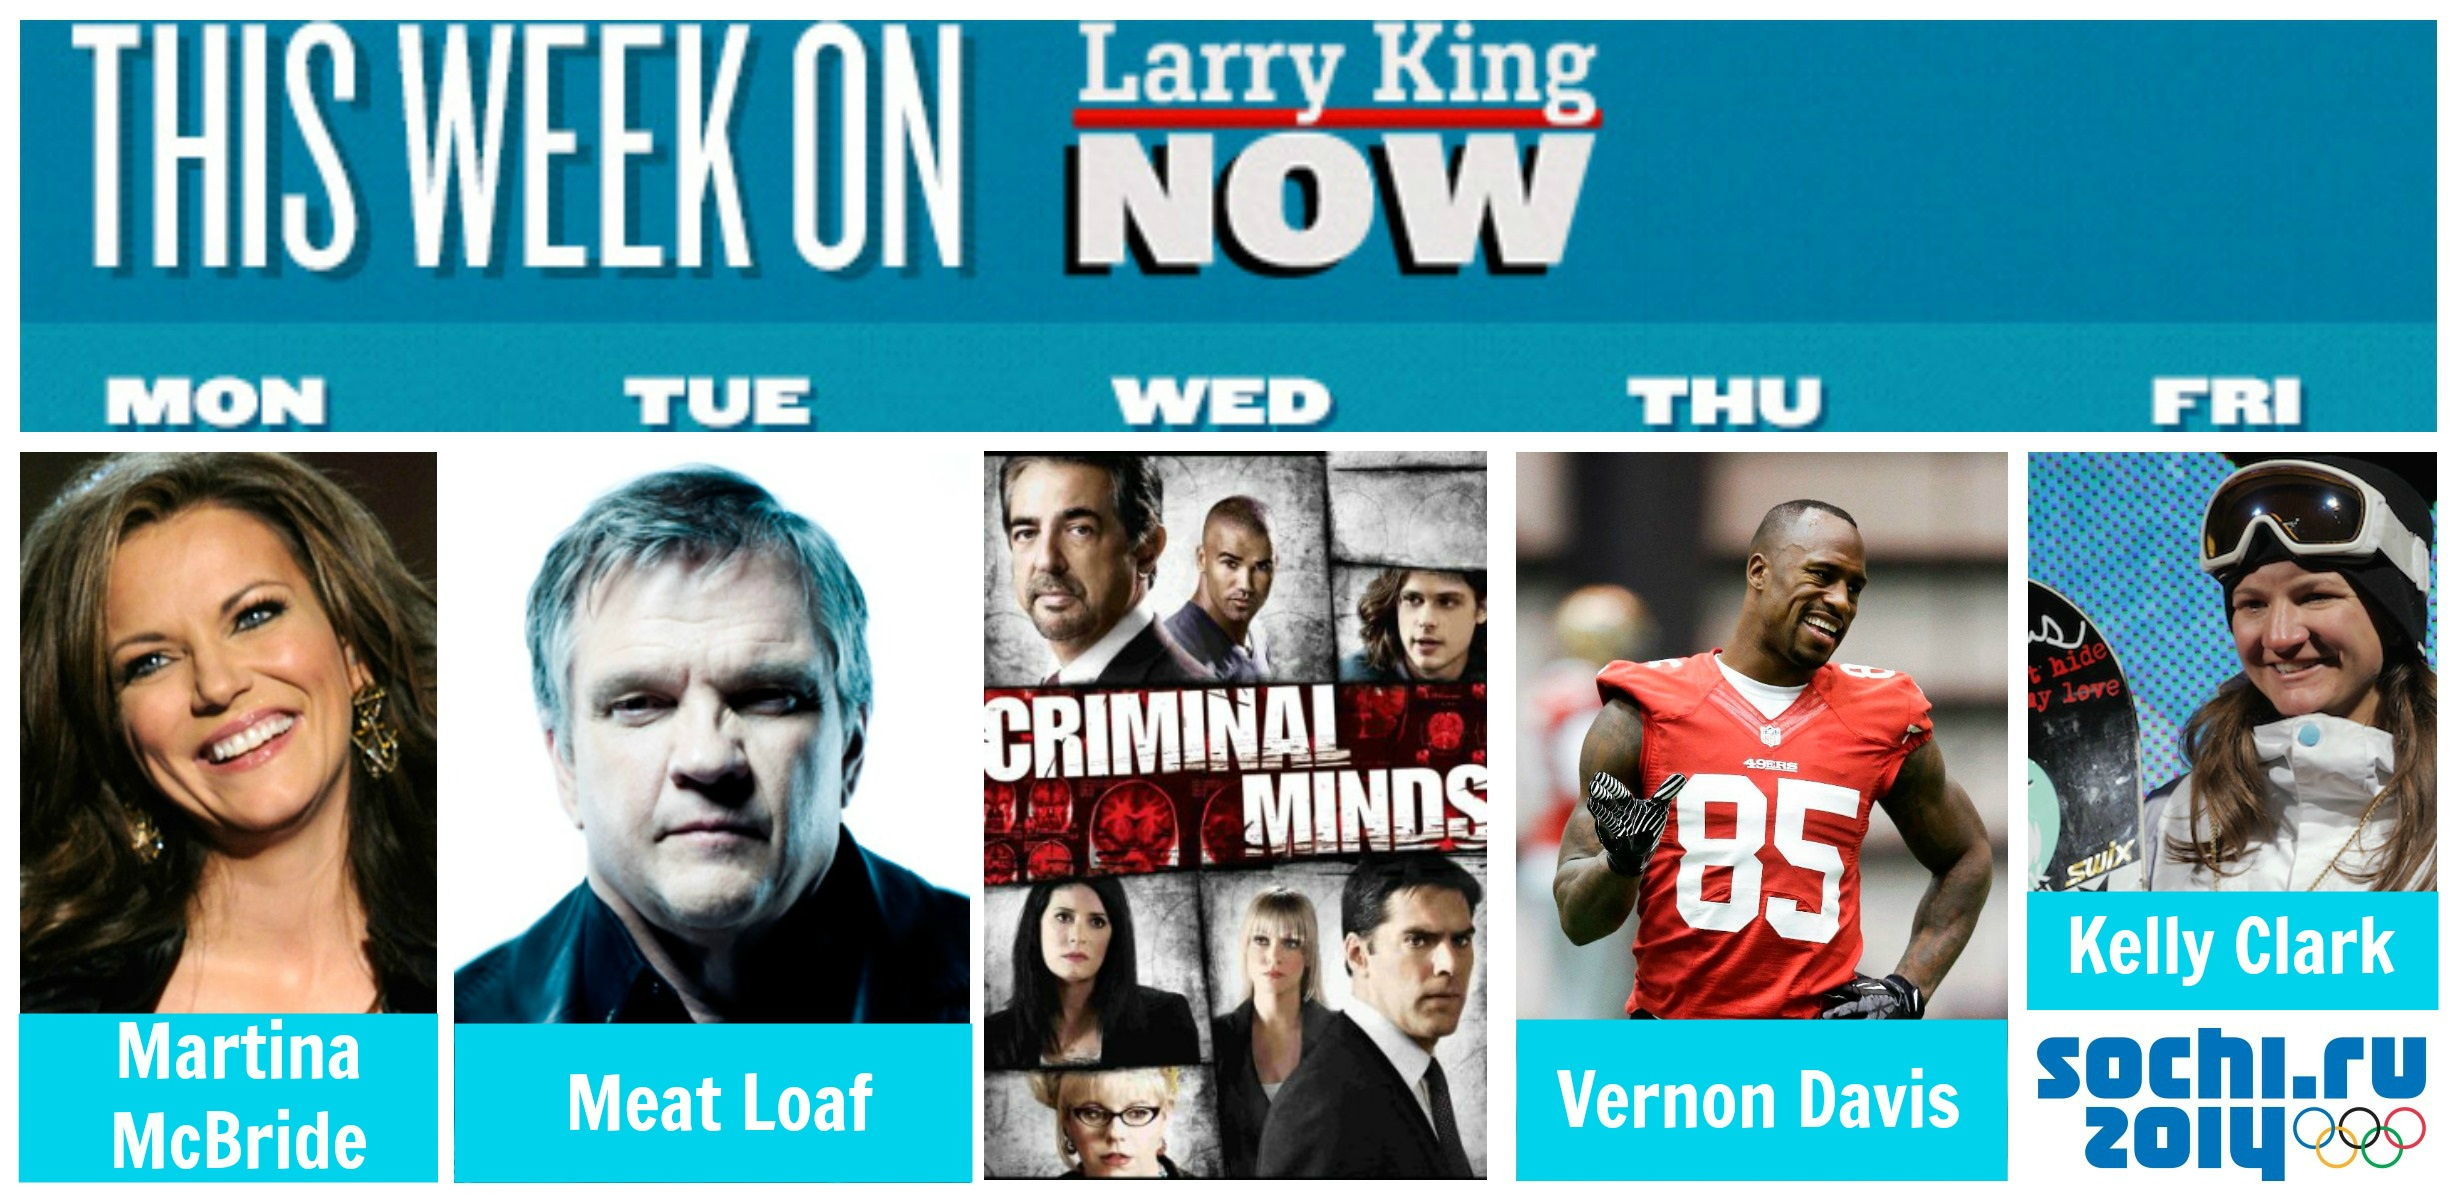 This week on Larry King Now: Martina McBride, Criminal Minds, Meat Loaf, Vernon Davis, Kelly Clark